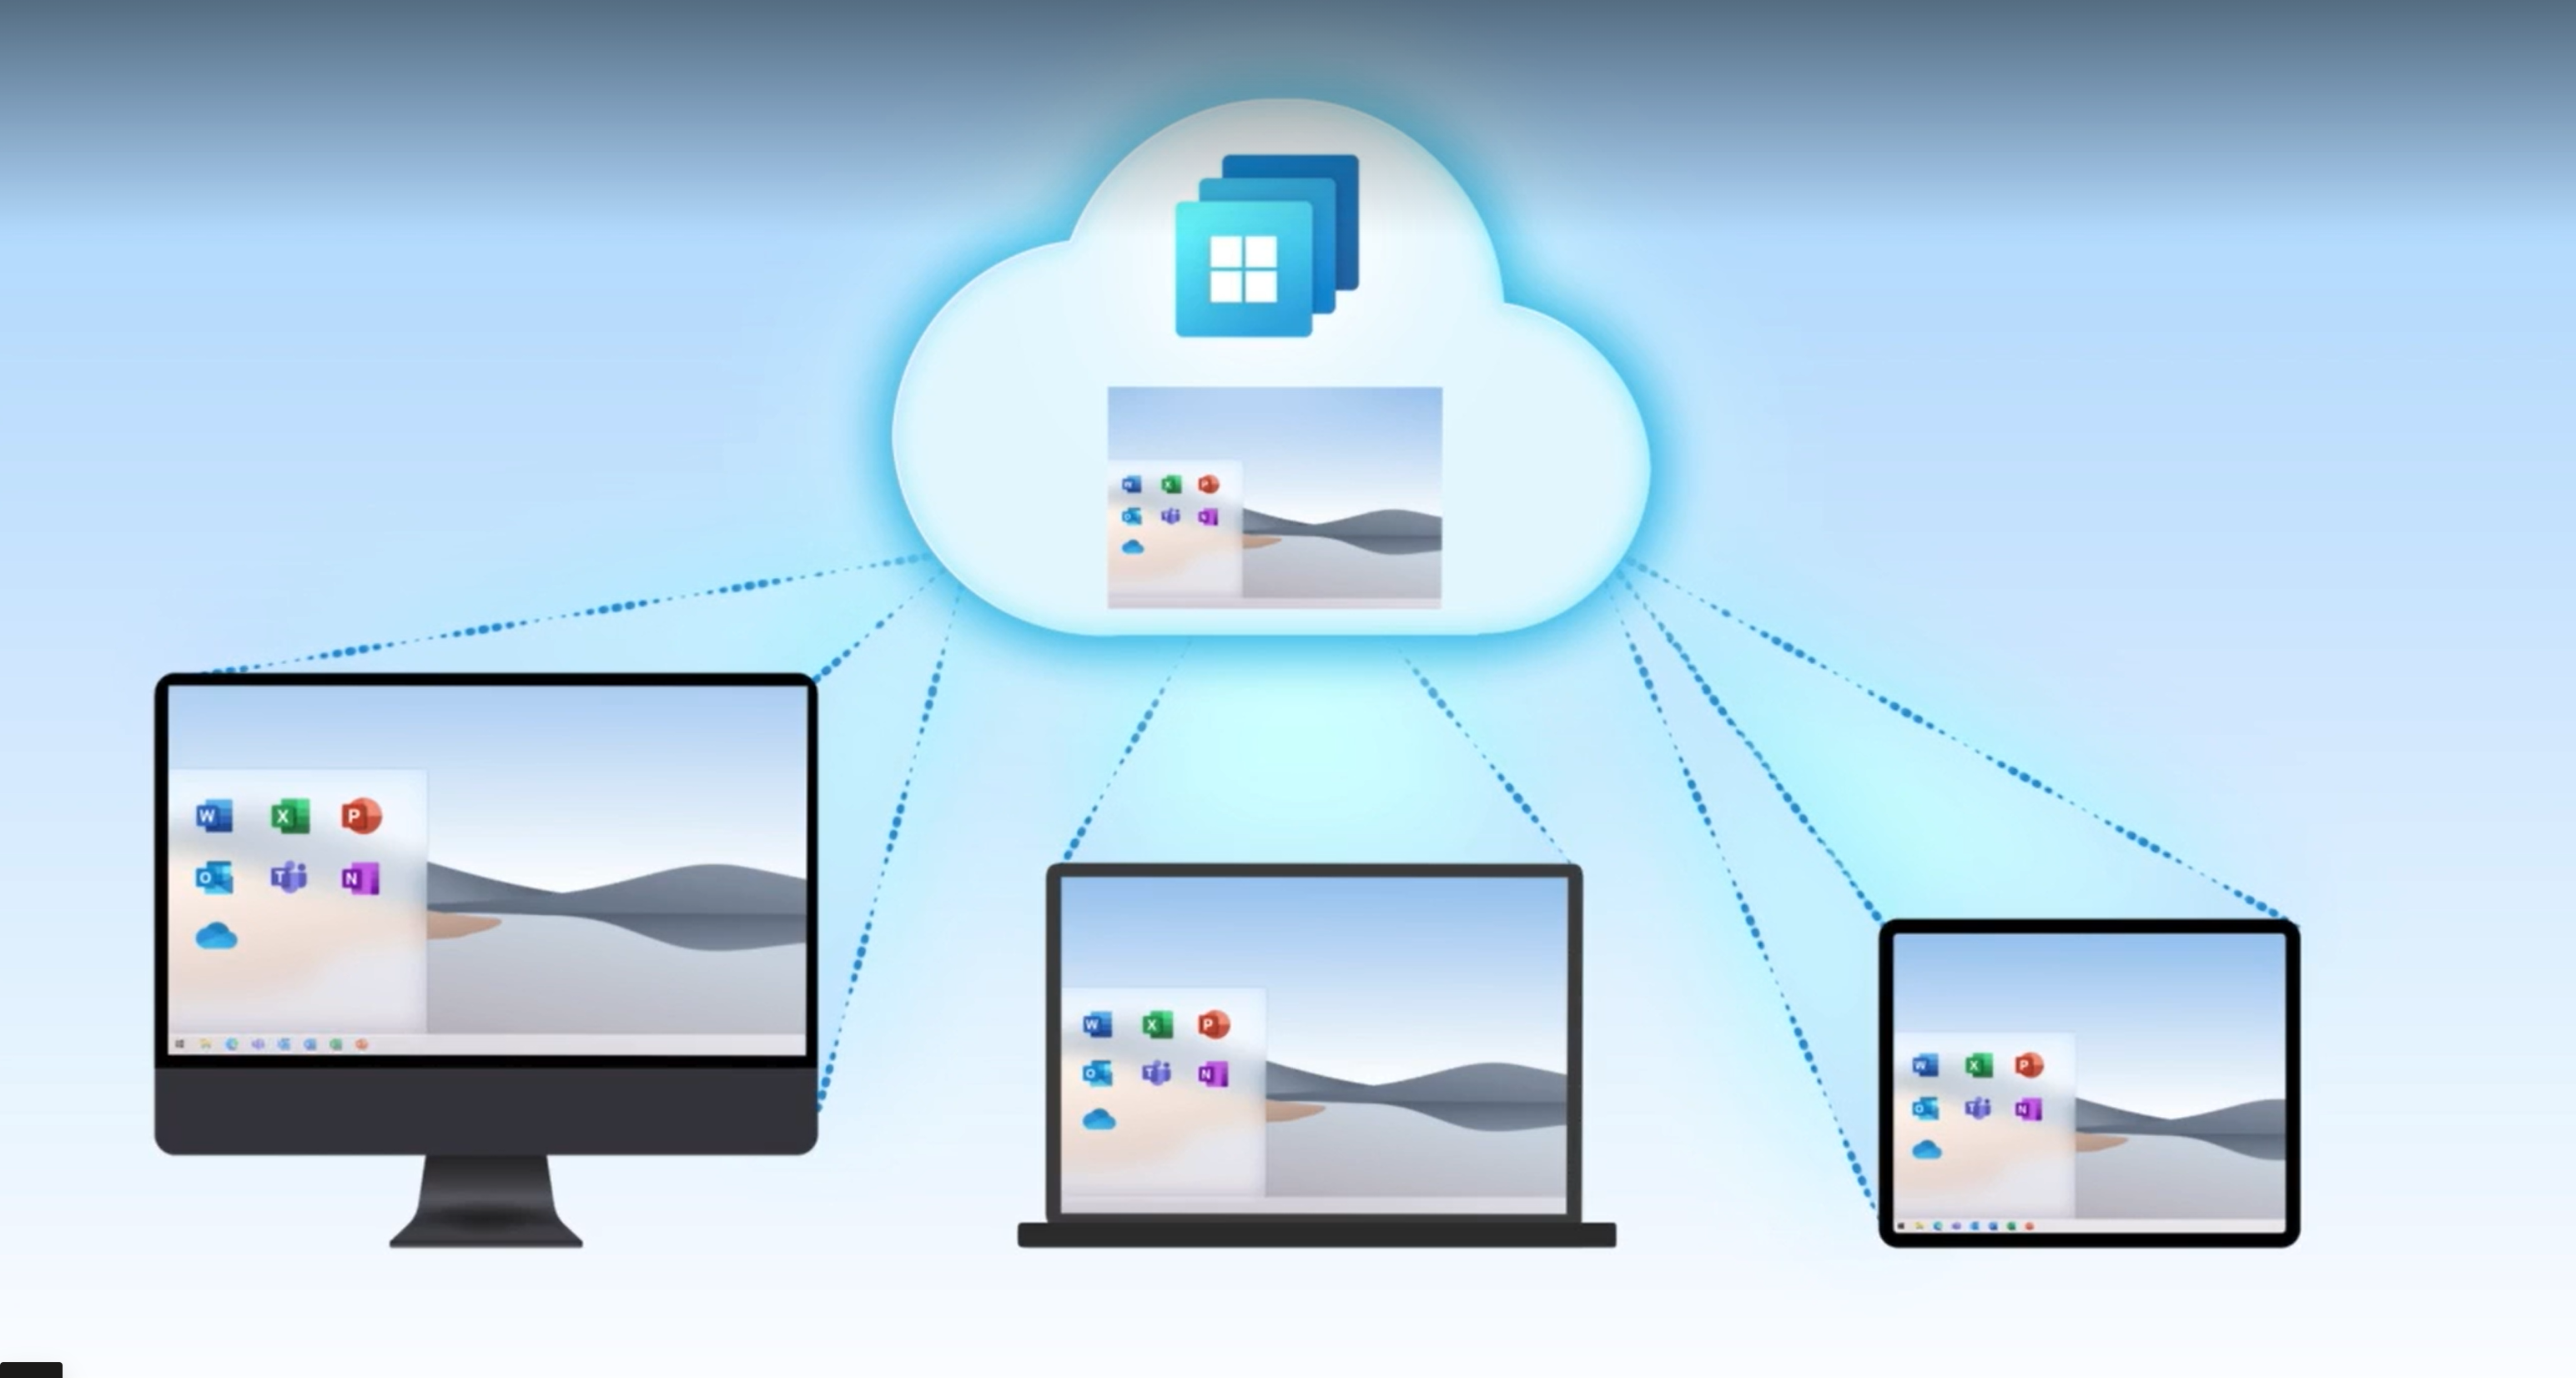 Heading: What is Microsoft's New Product 'Cloud PC'?